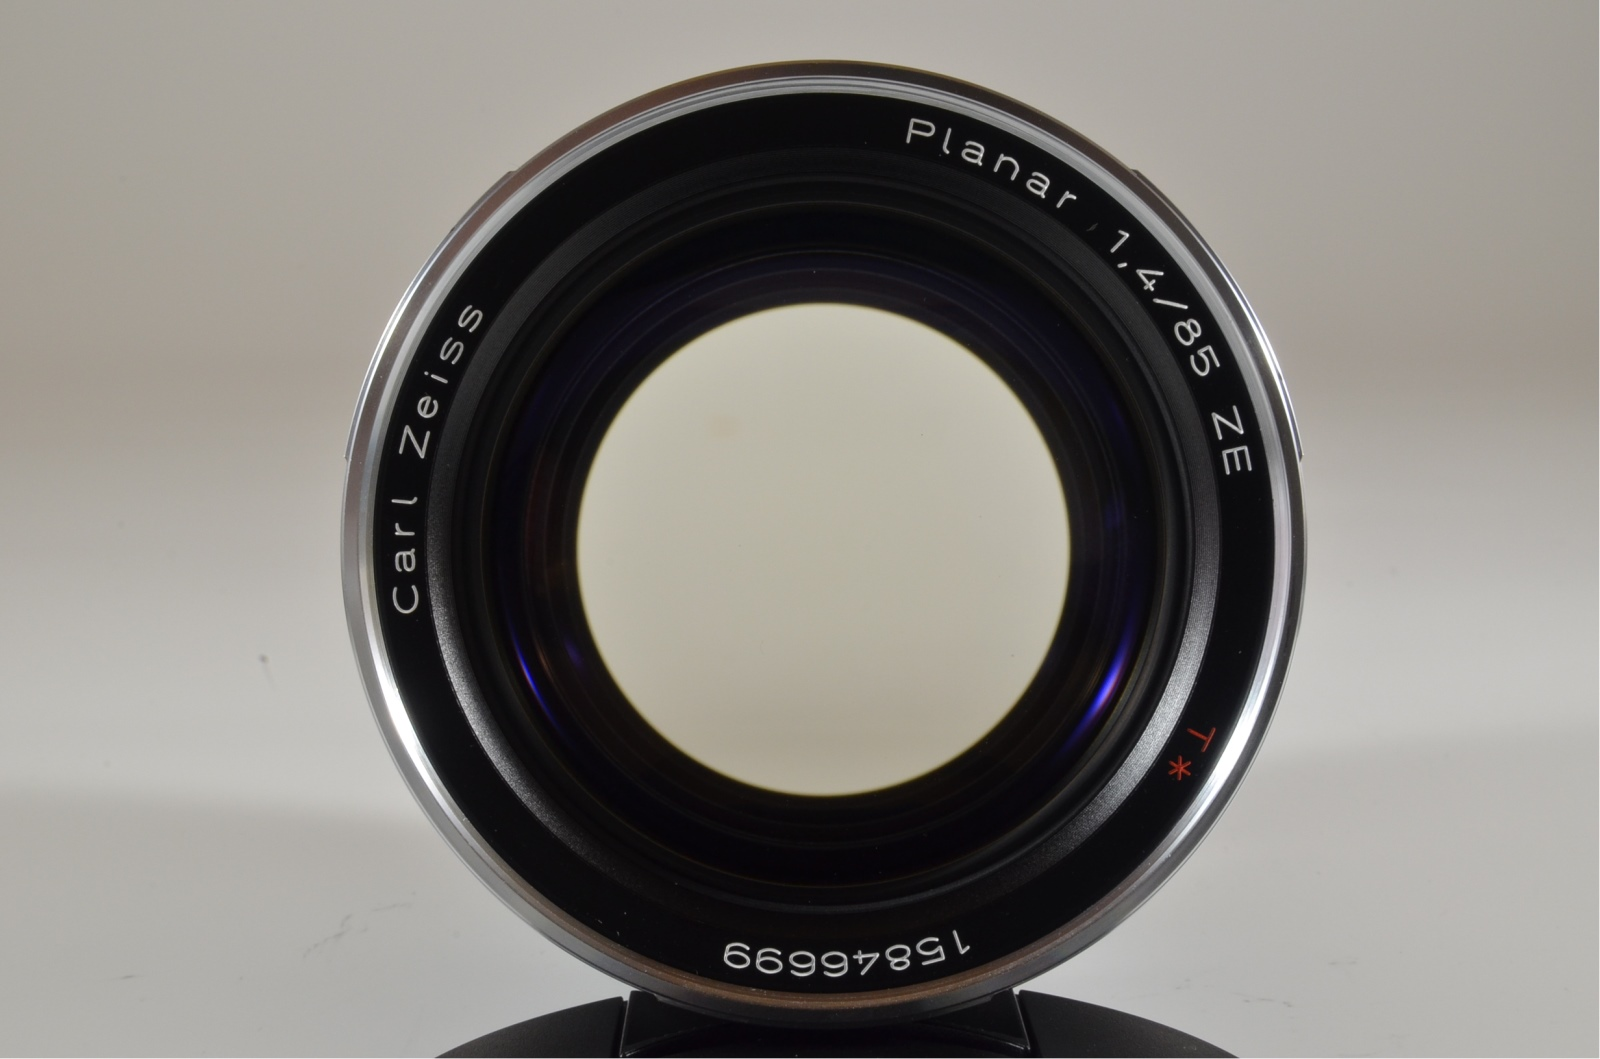 carl zeiss planar t* 85mm f/1.4 ze for canon